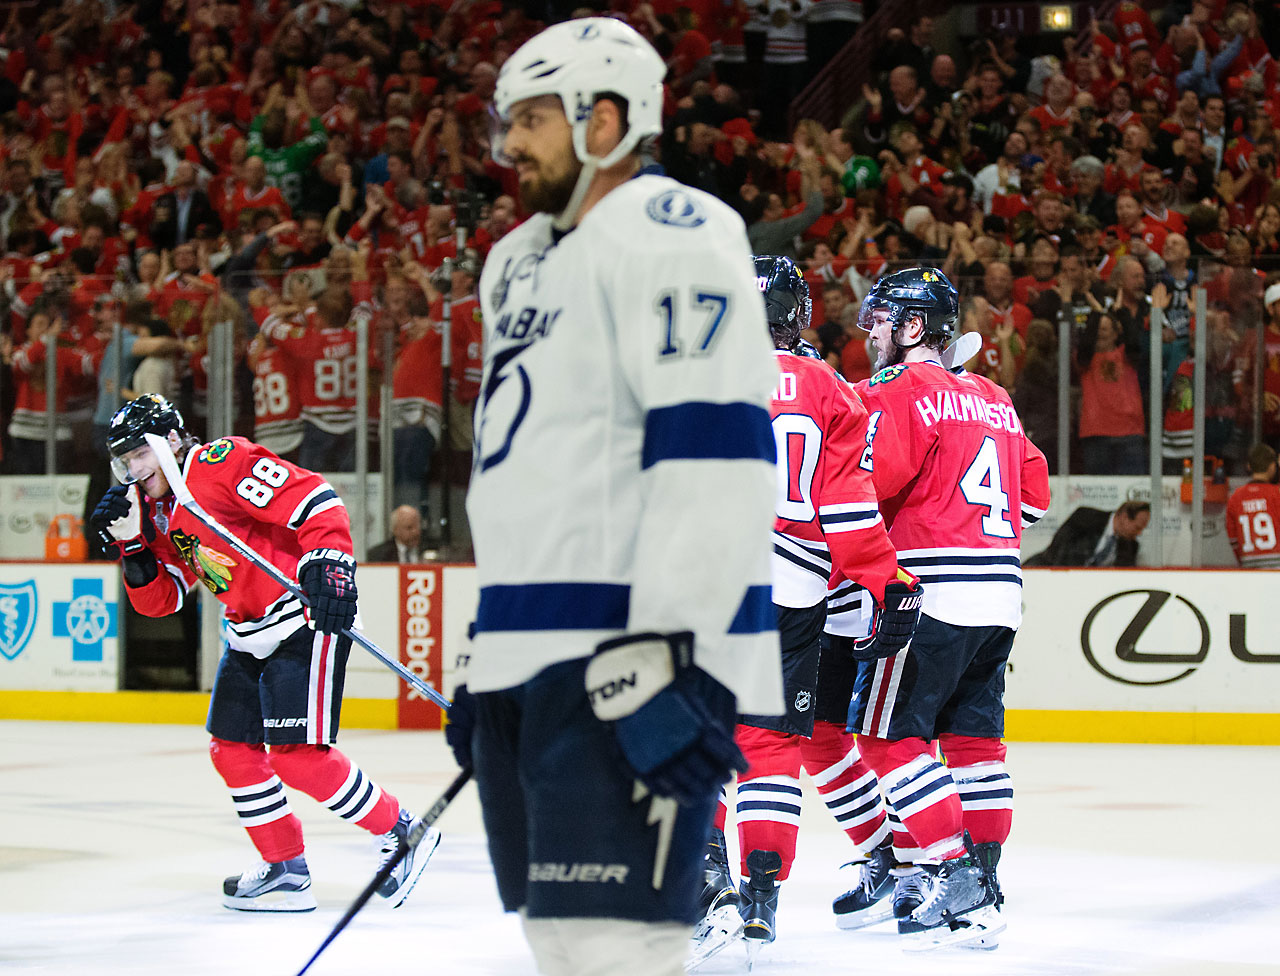 Led by Ben Bishop and big defenseman Victor Hedman, the Lightning allowed just 13 goals in the series, but it wasn't enough against the unflappable Blackhawks. (Text credit: AP)